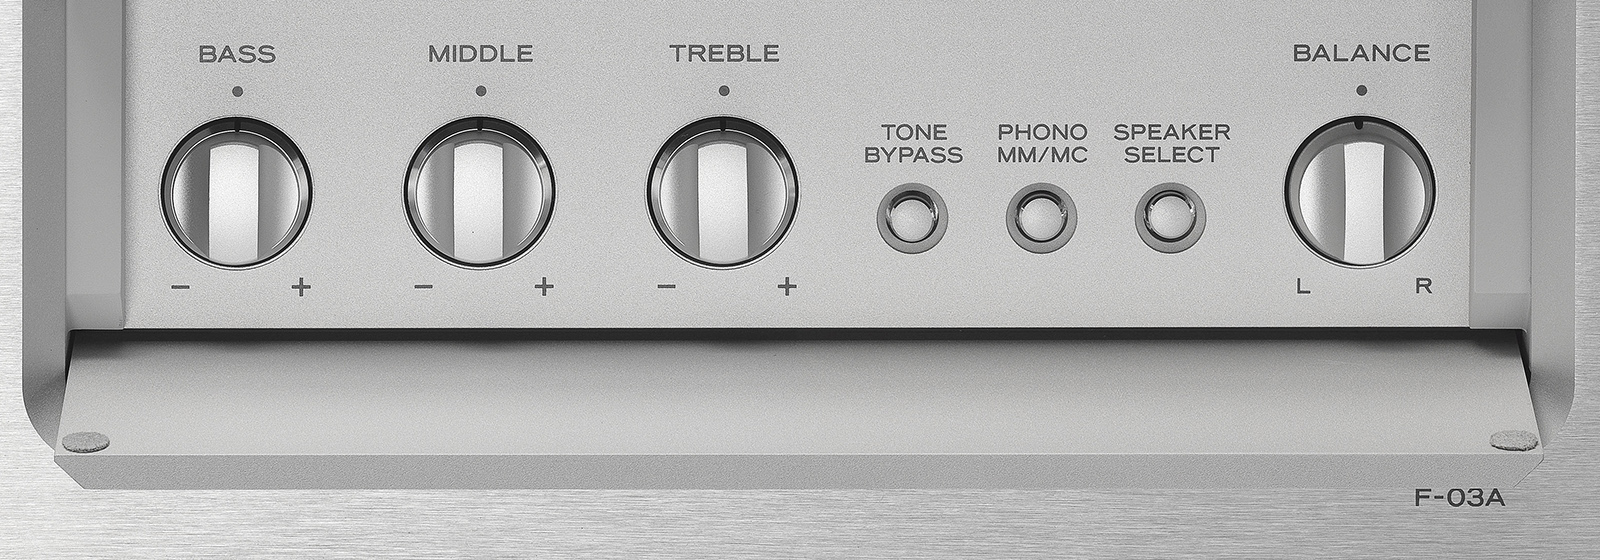 Esoteric F-03A Integrated Amplifier Made In Japan F-03a_tone_control